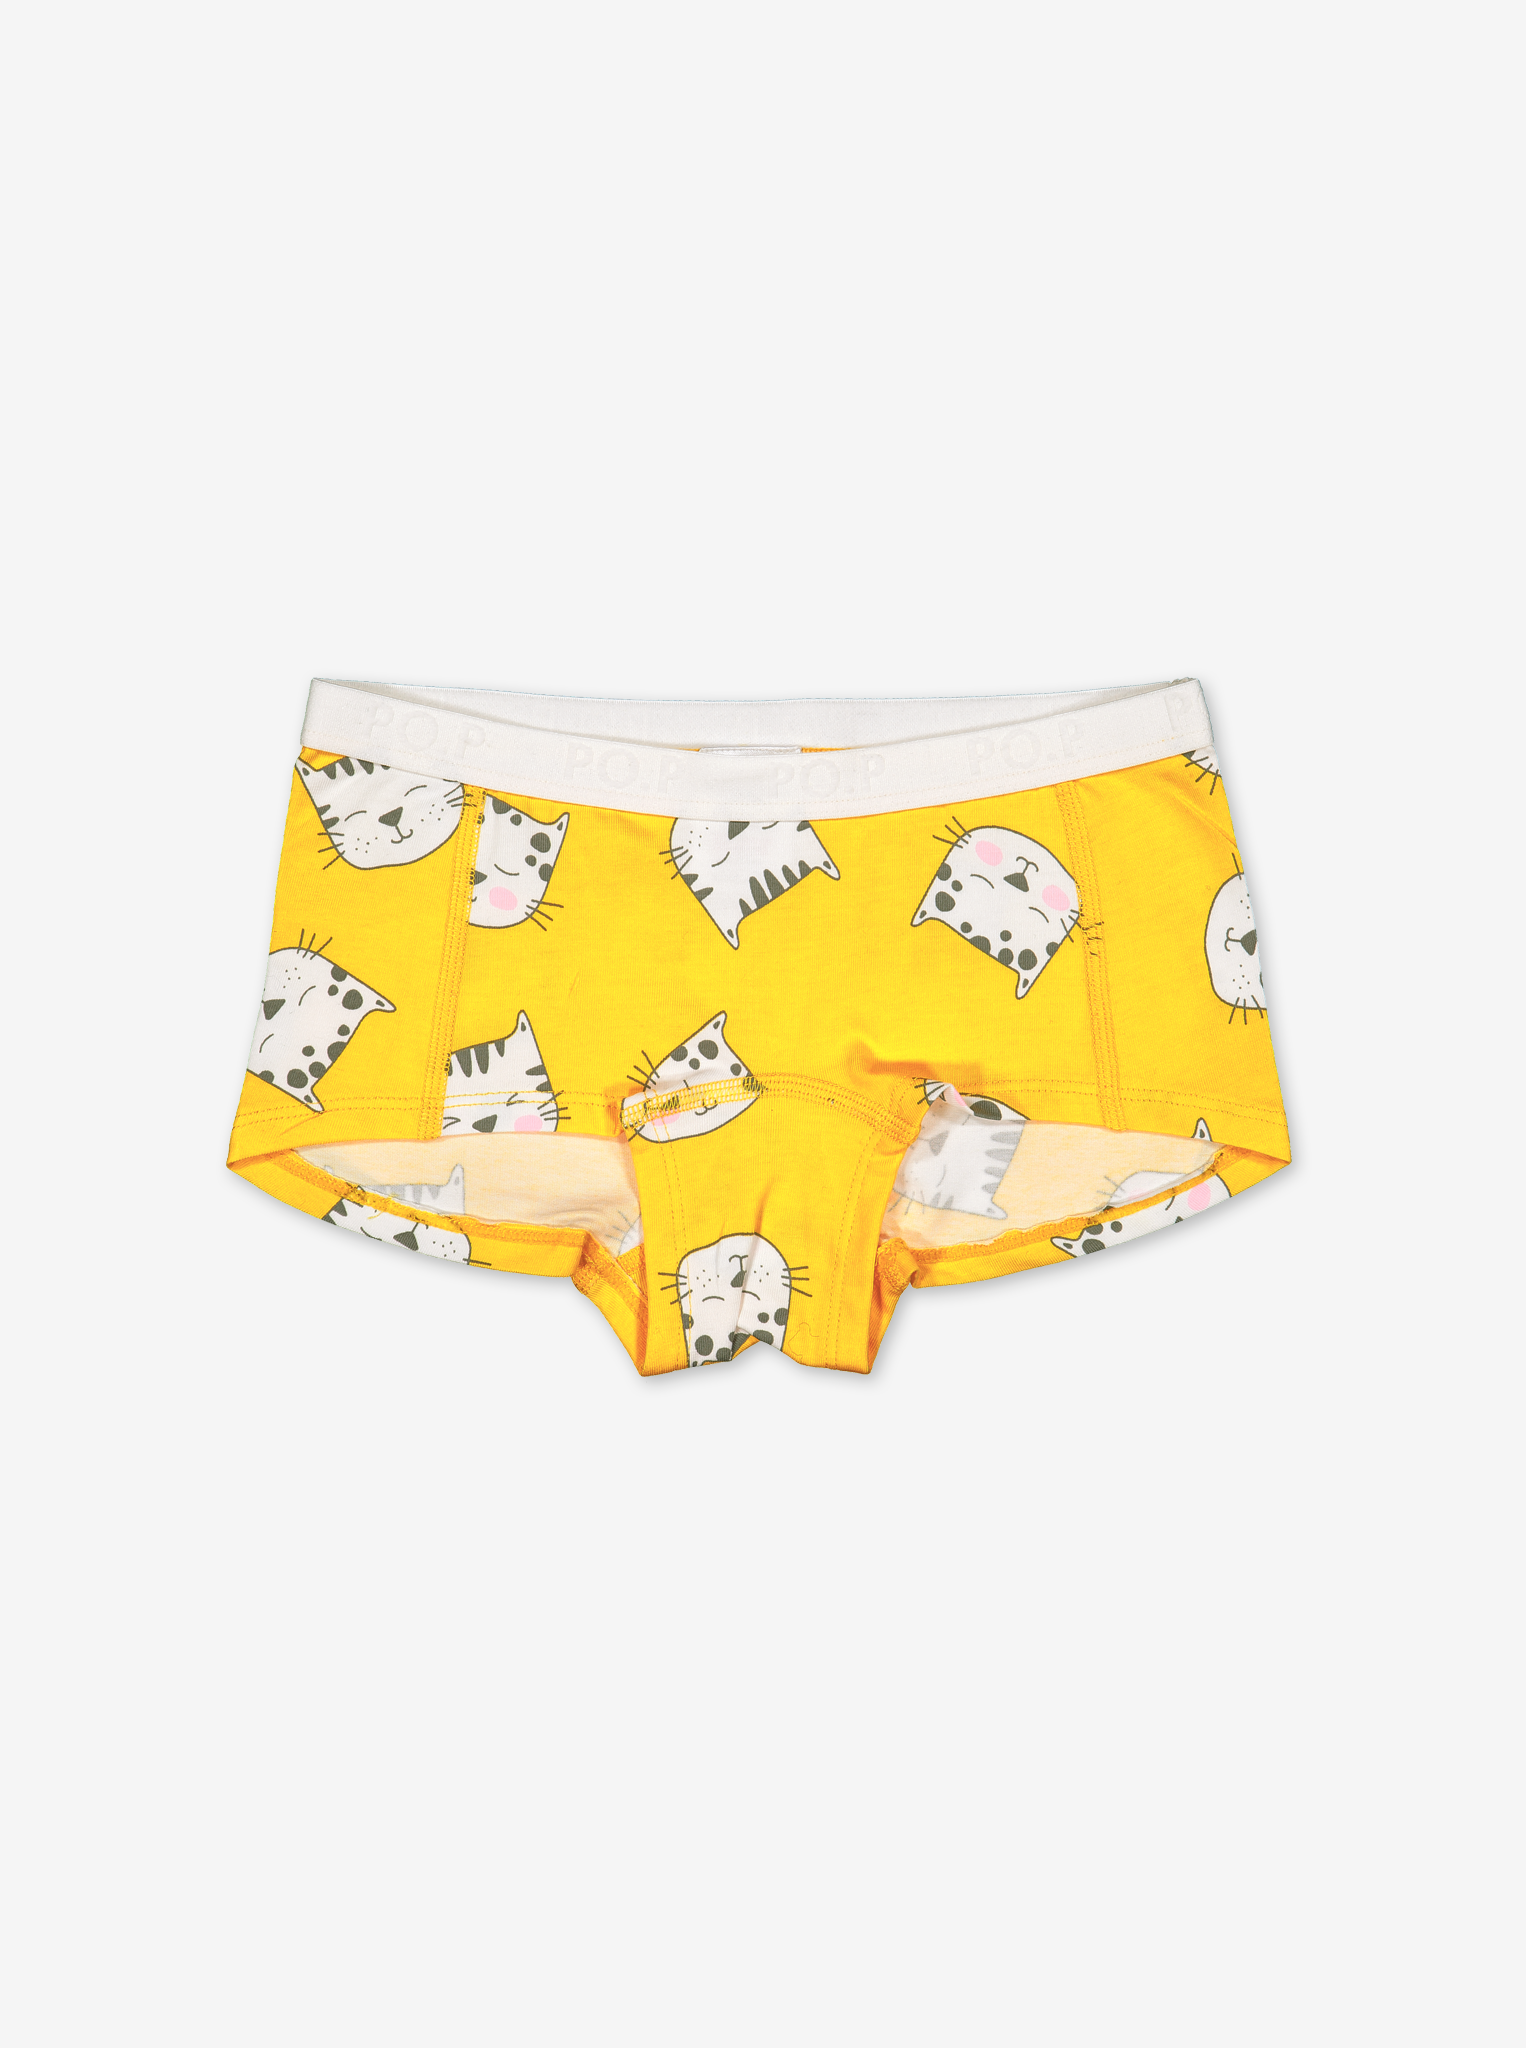 Girls Hipster Brief-Girl-1-12y-Yellow